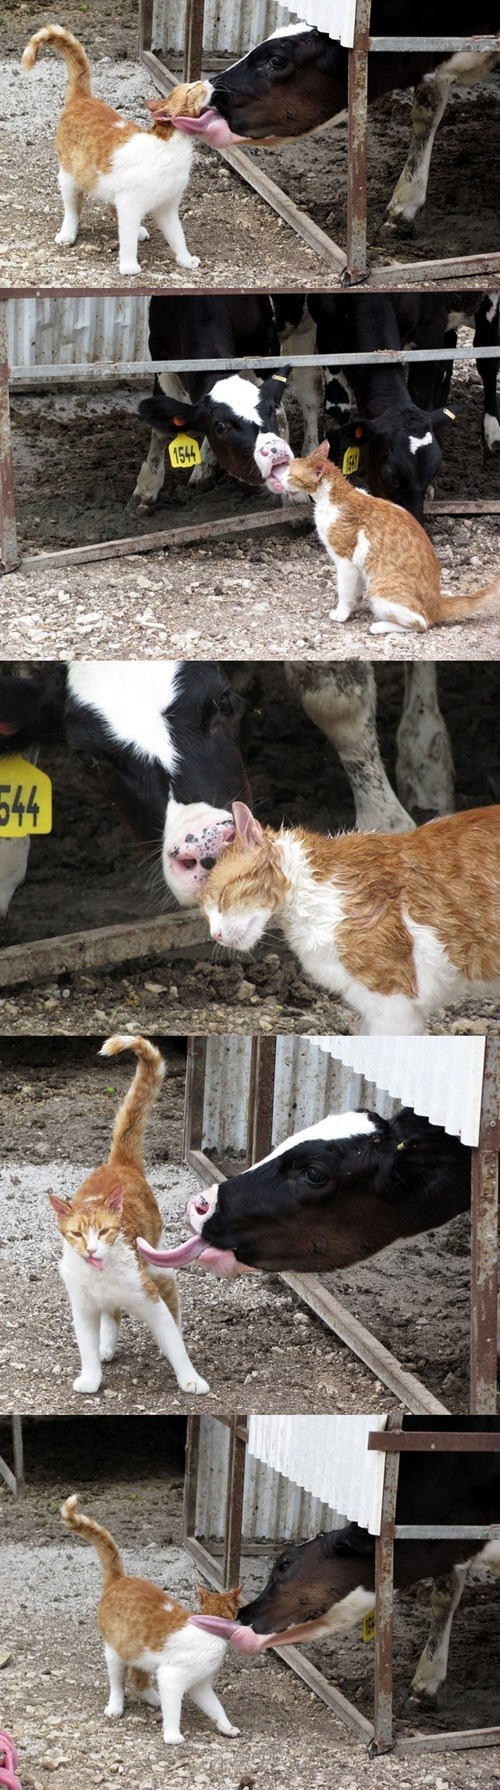 Cats cute cows kisses friendship